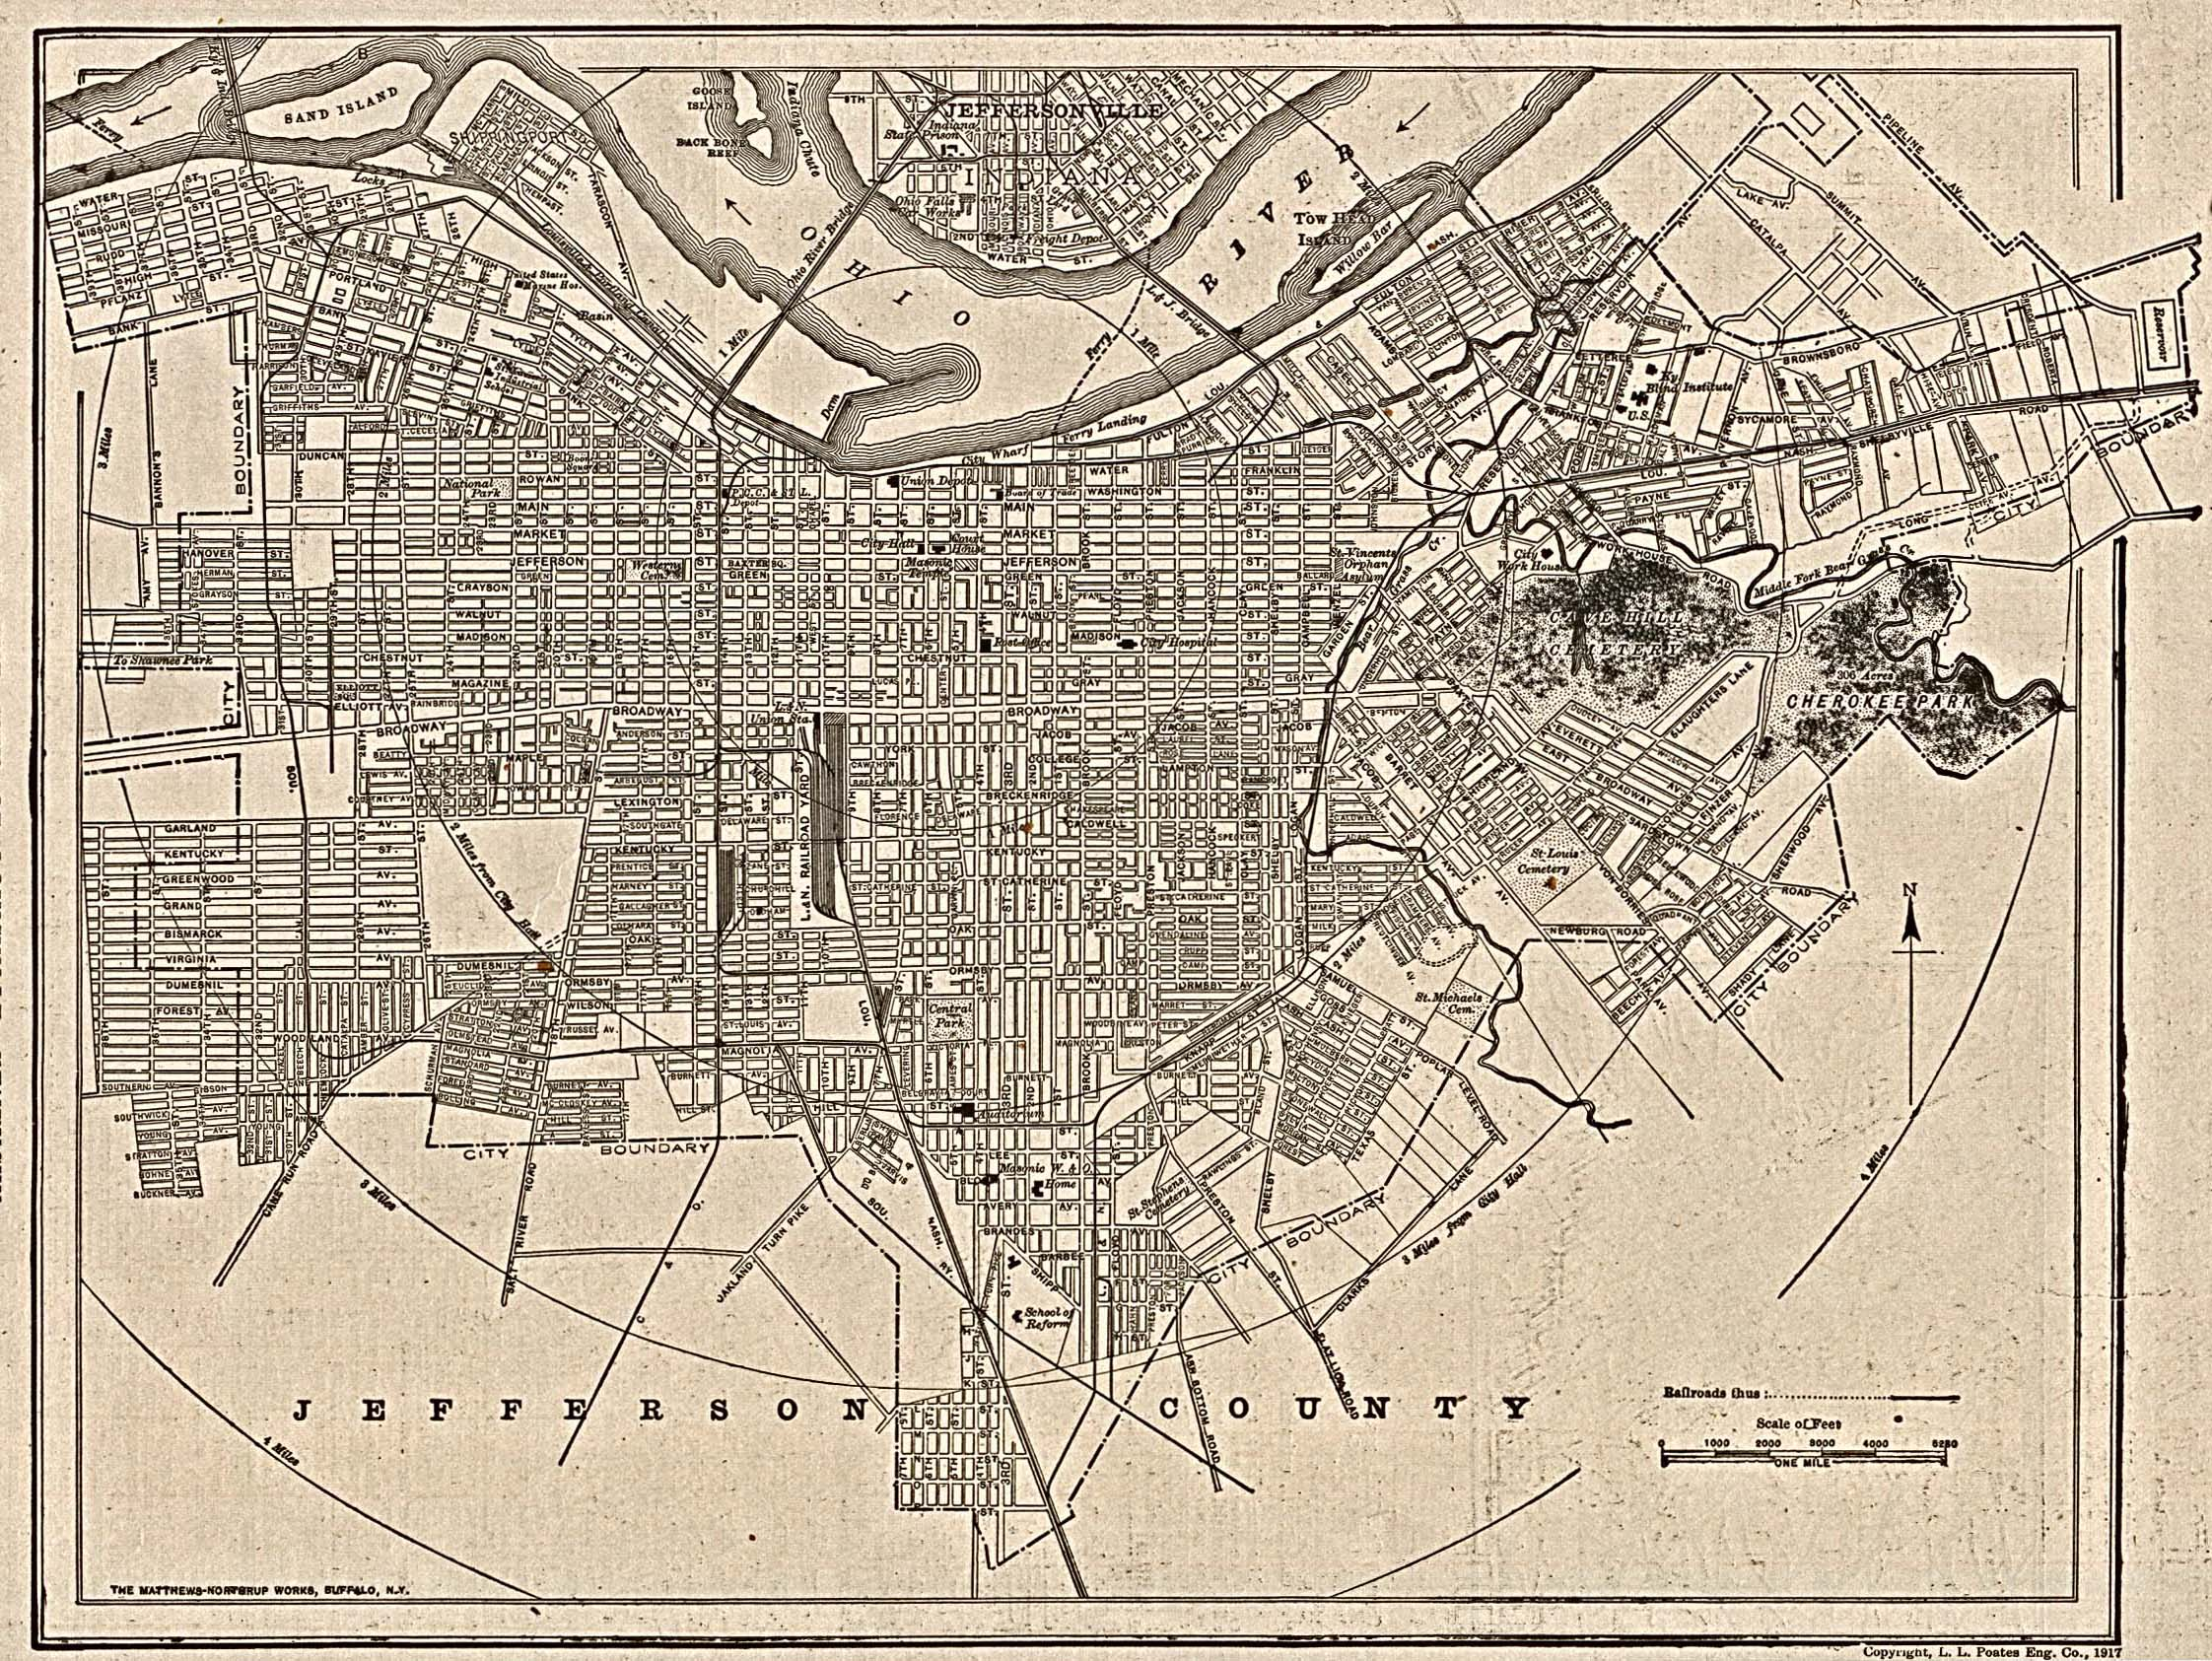 Historical Maps of U.S Cities. Louisville, Kentucky 1917 The New Encyclopedic Atlas and Gazetteer of the World. New York: P.F. Collier & Son, 1917 (1MB)